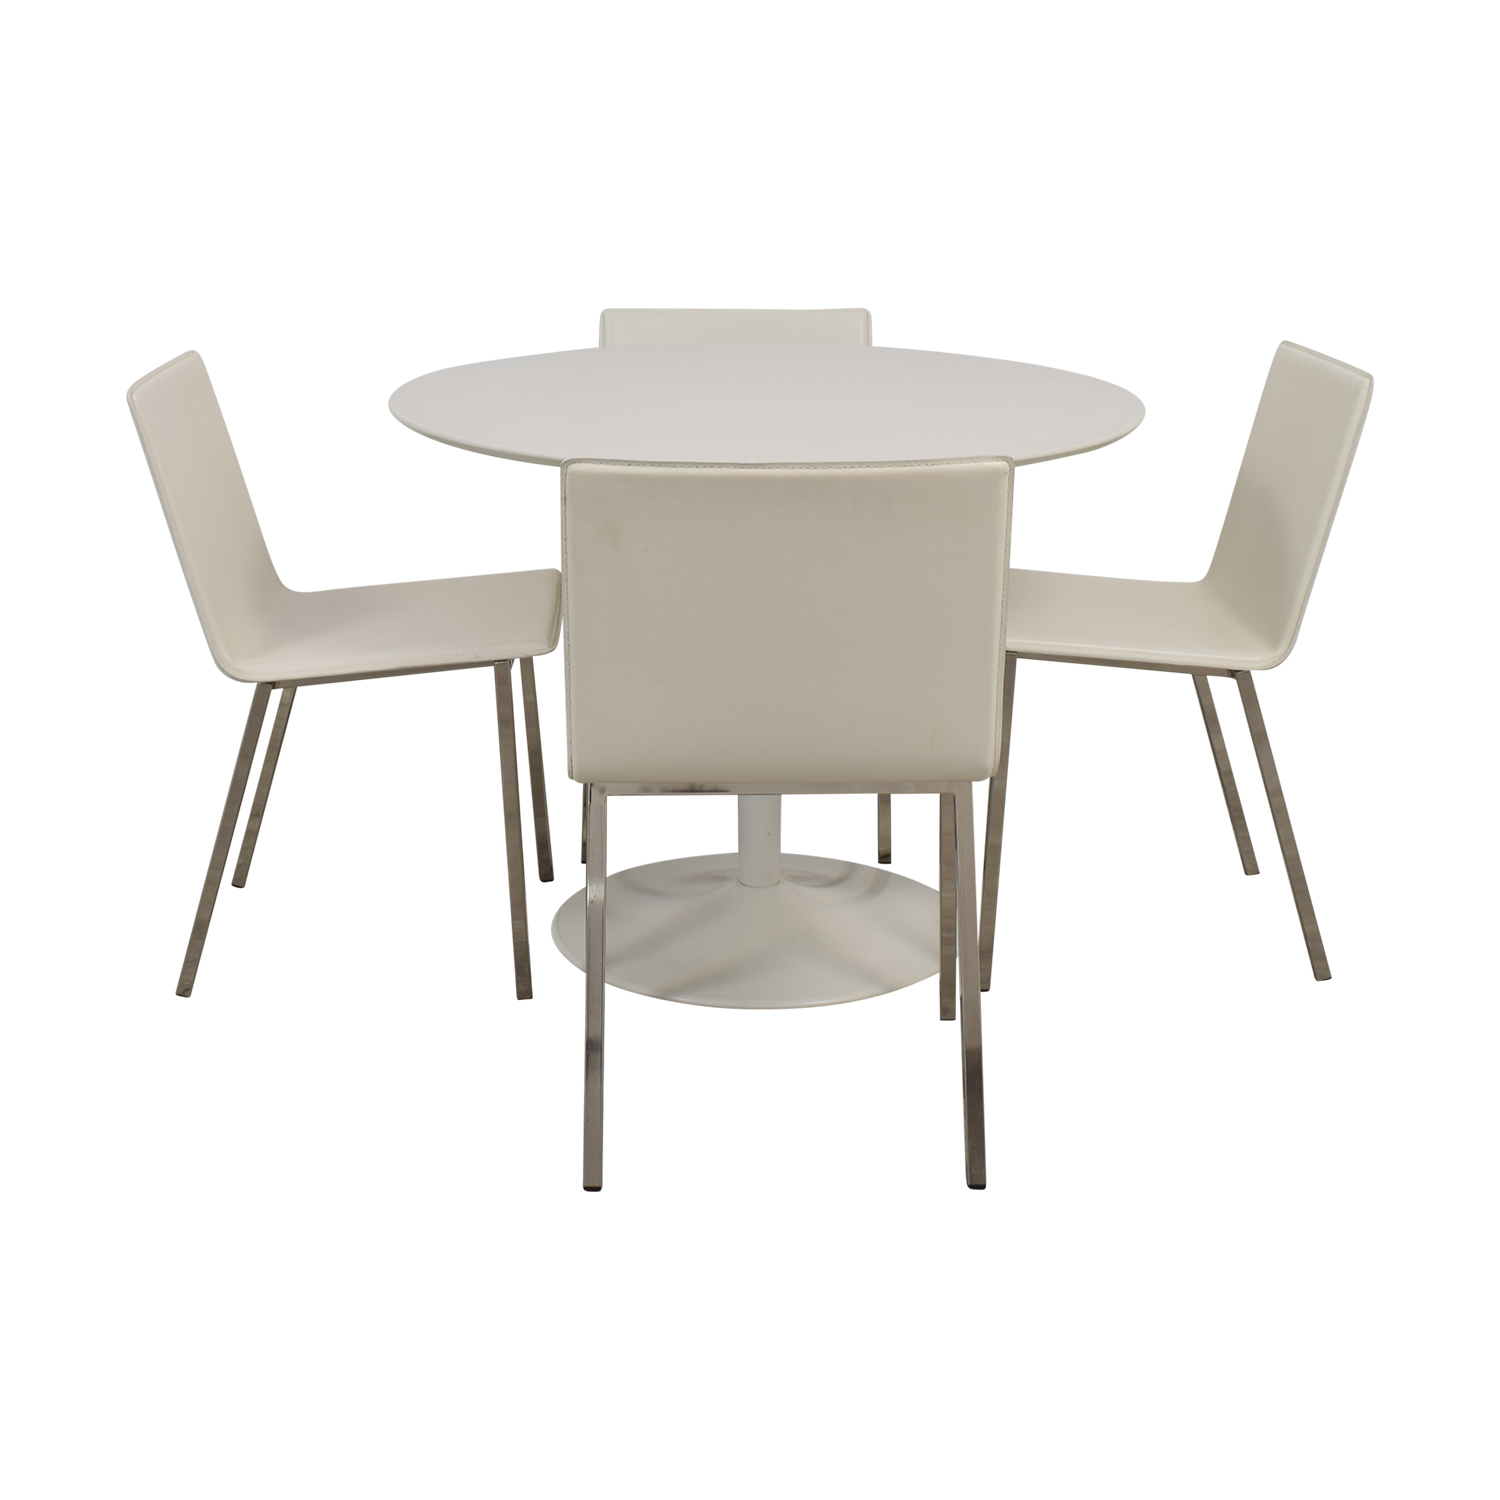 90 Off Italian Dining Set With Leaf Extensions And